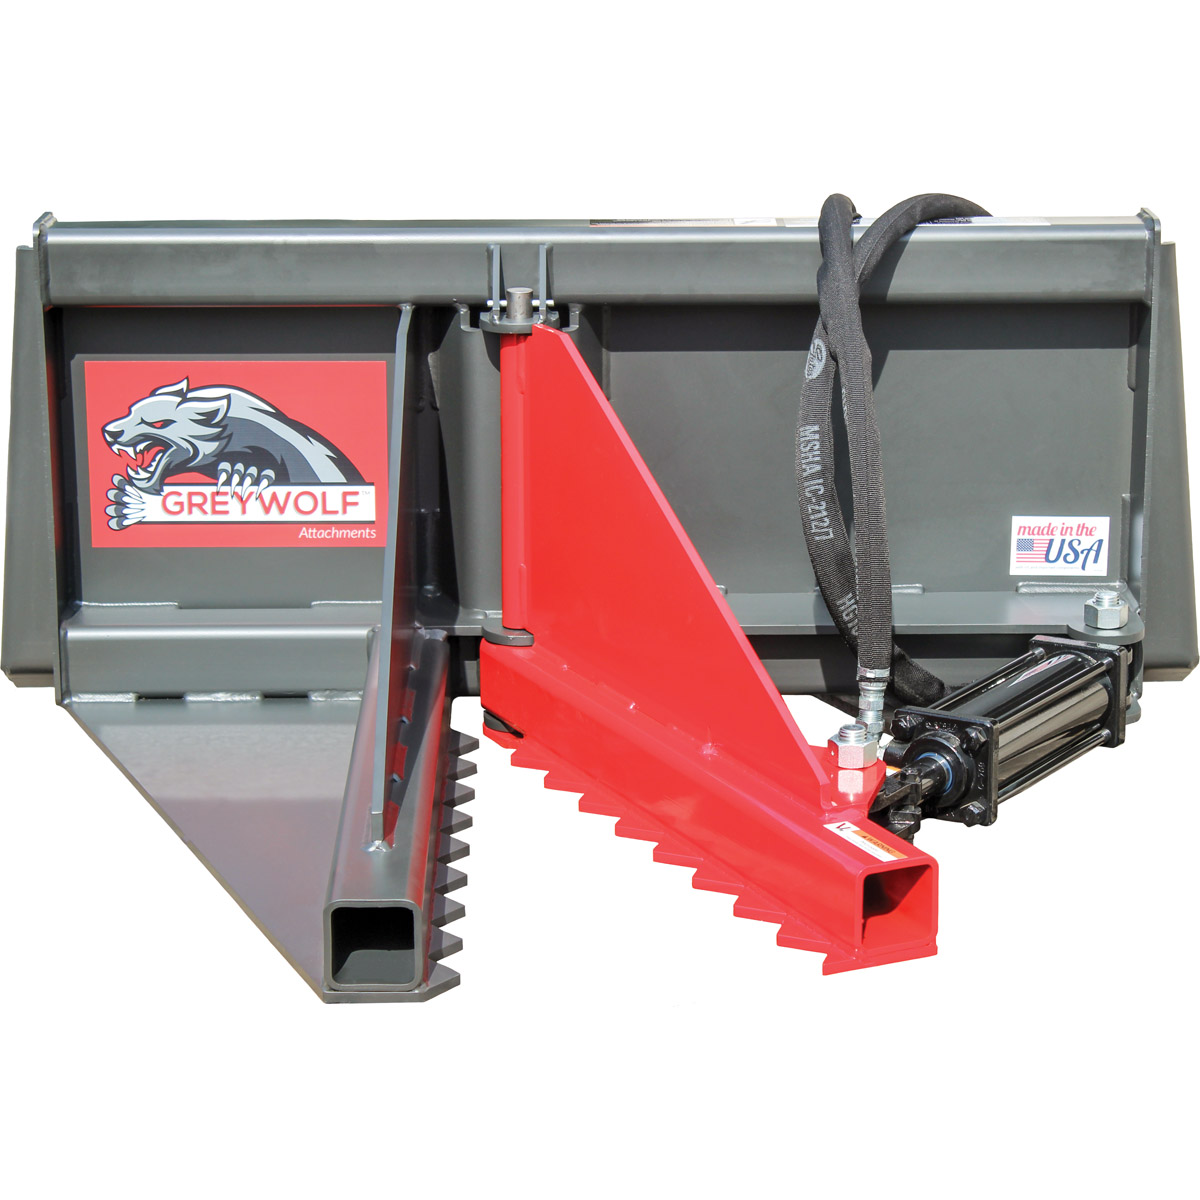 GreyWolf Tree Puller Skid Steer Attachment